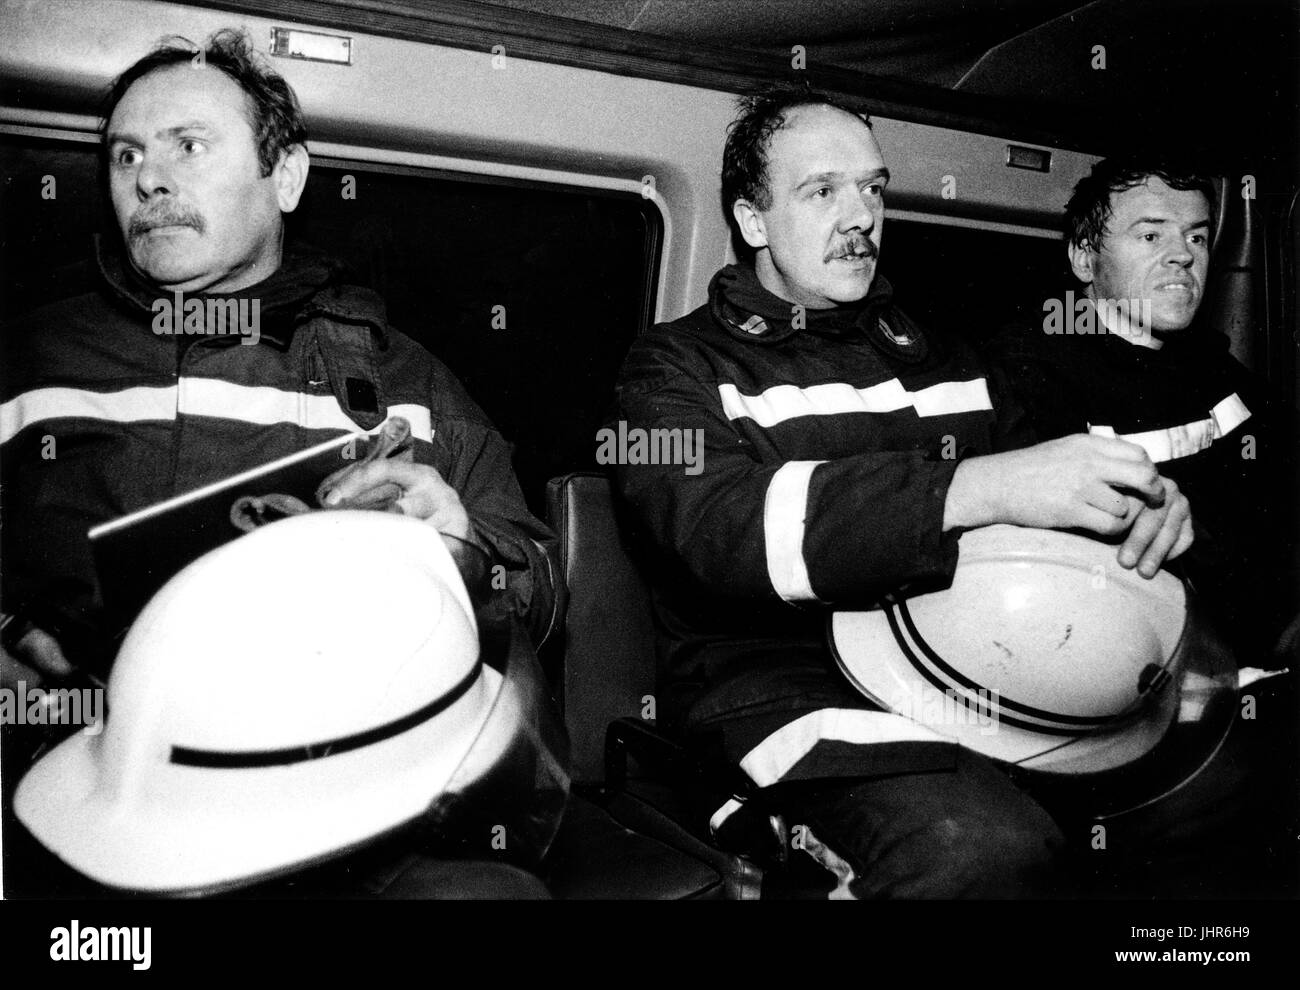 Fire fighters from West Midlands Fire Brigade get ready to go bake to their fire station after a fire has been put - Stock Image